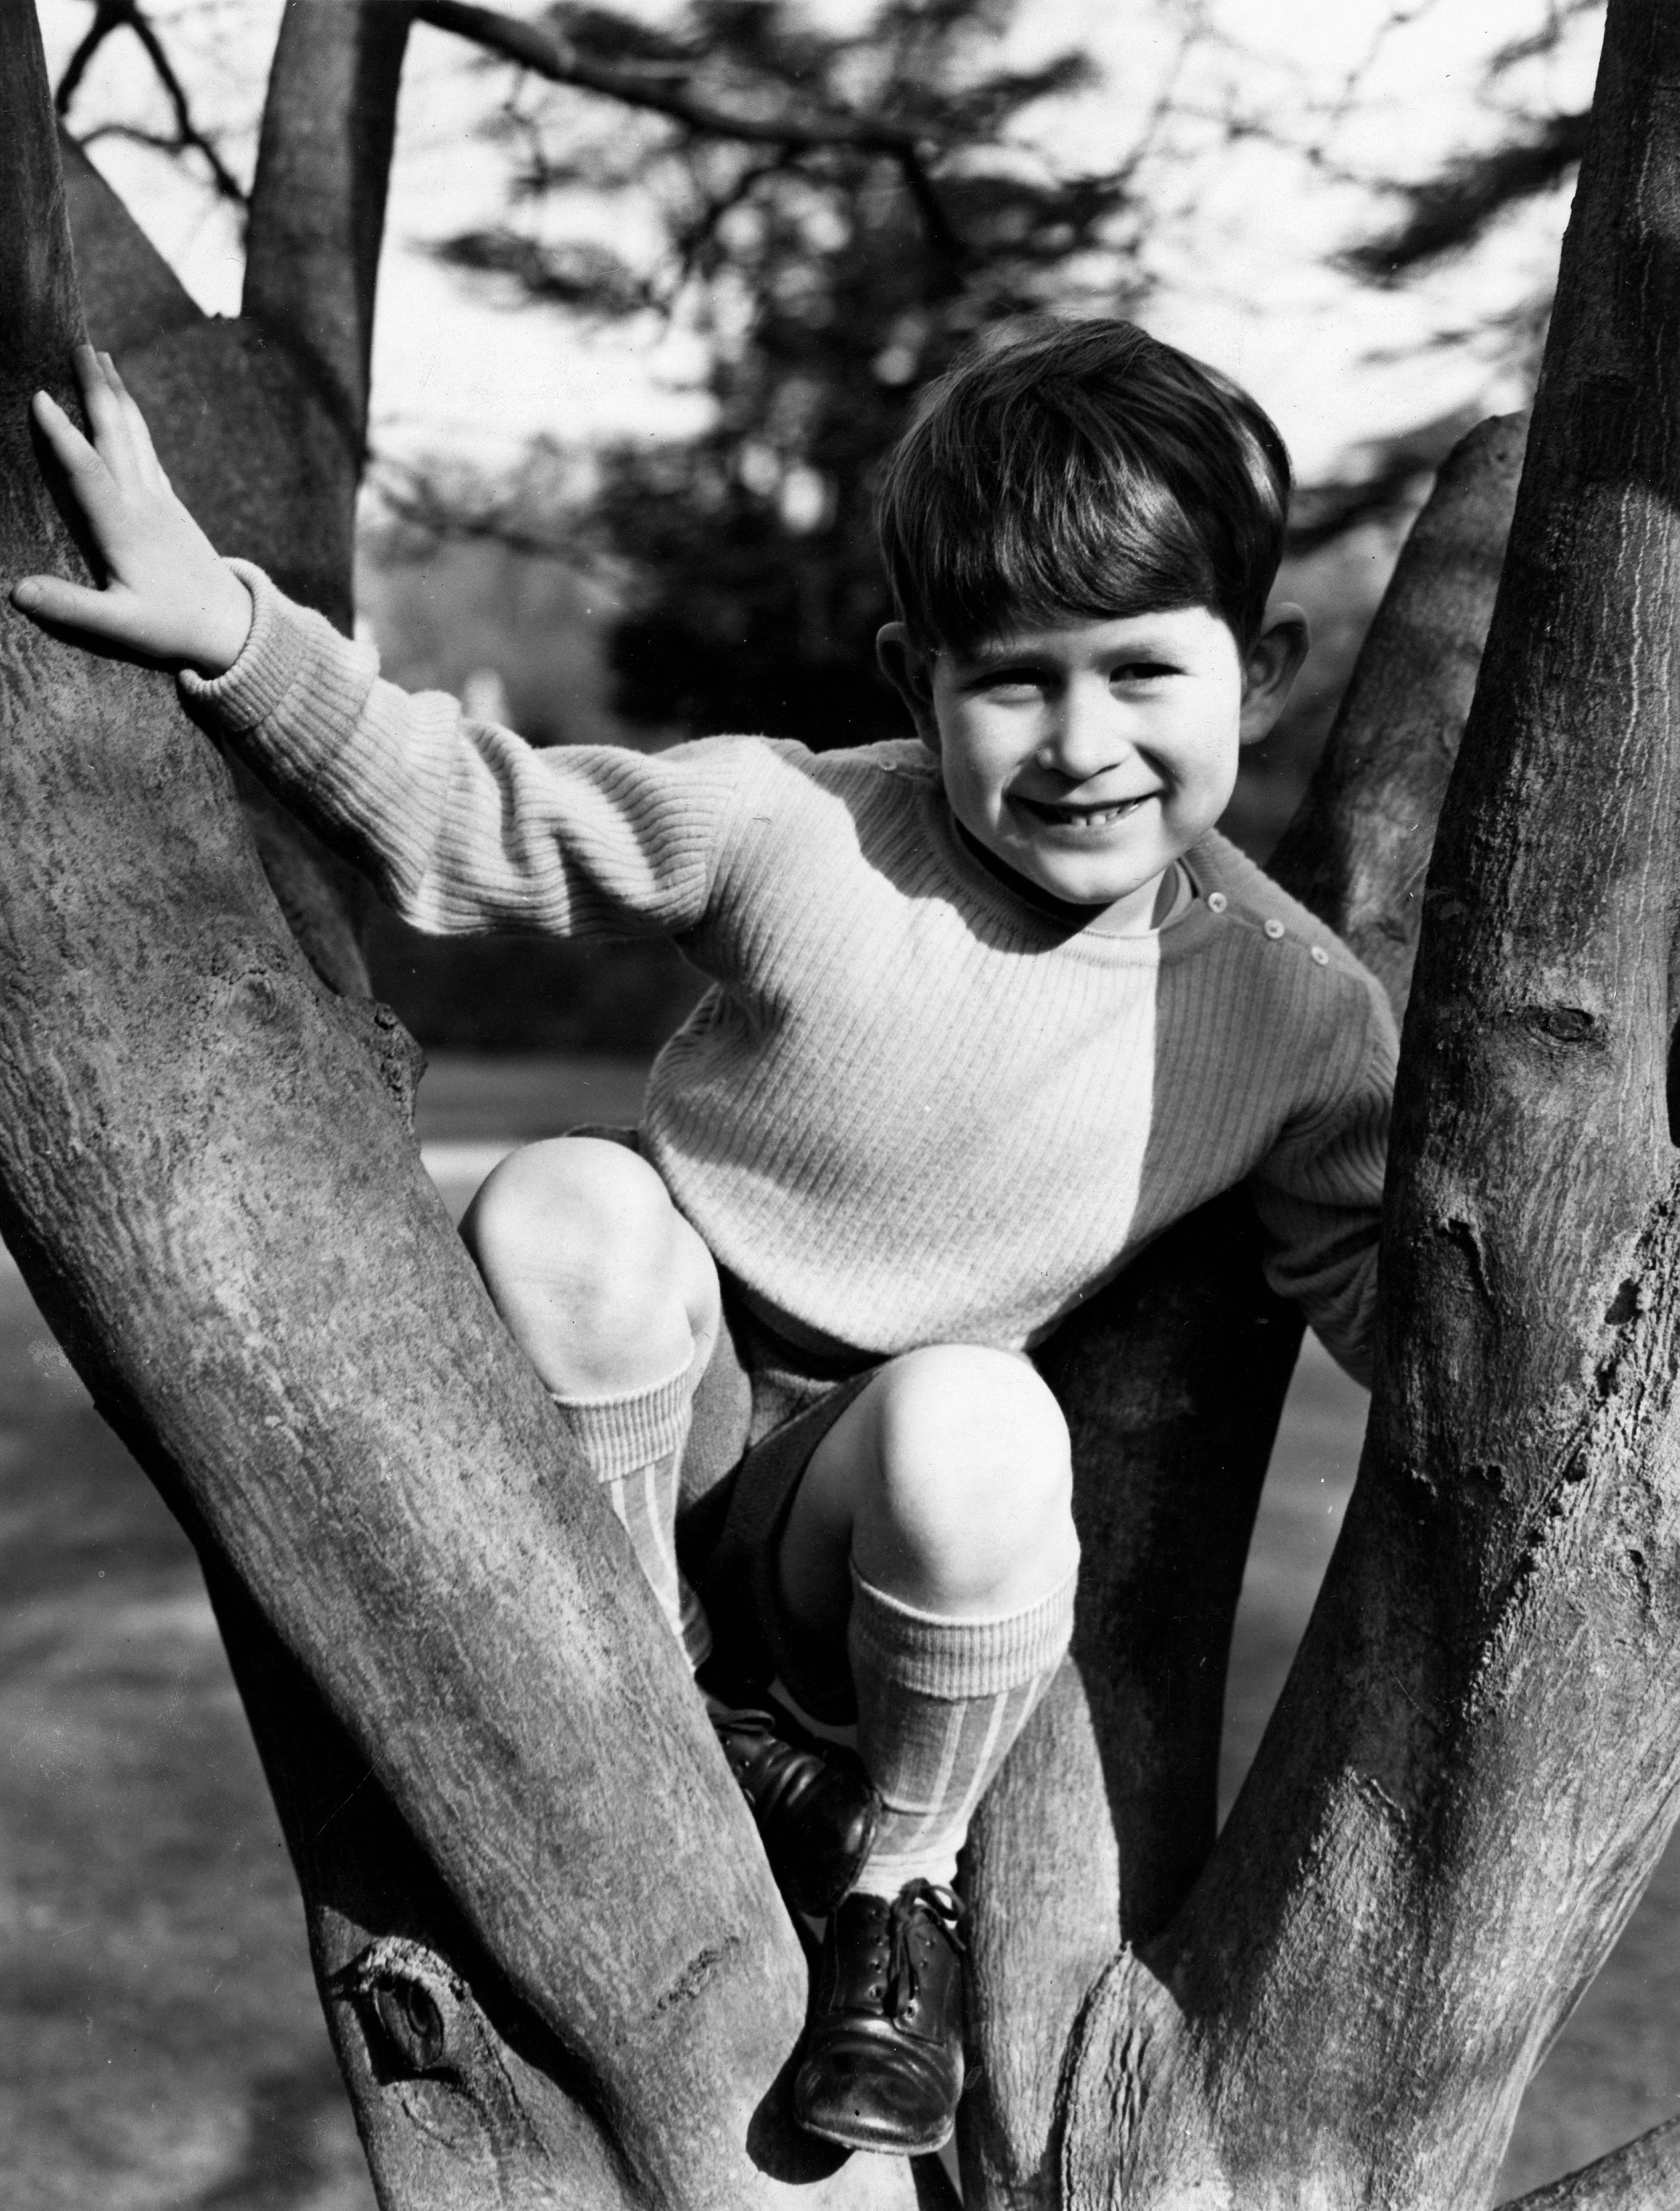 Apr. 25, 1954 - London, U.K. - PRINCE CHARLES, the Prince of Wales is the son of the reigning Queen Elizabeth II and Prince Philip, Duke of Edinburgh. PICTURED: Prince Charles climbing a tree in the Gardens of the Royal Lodge., Image: 210143362, License: Rights-managed, Restrictions: , Model Release: no, Credit line: Profimedia, Zuma Press - Archives